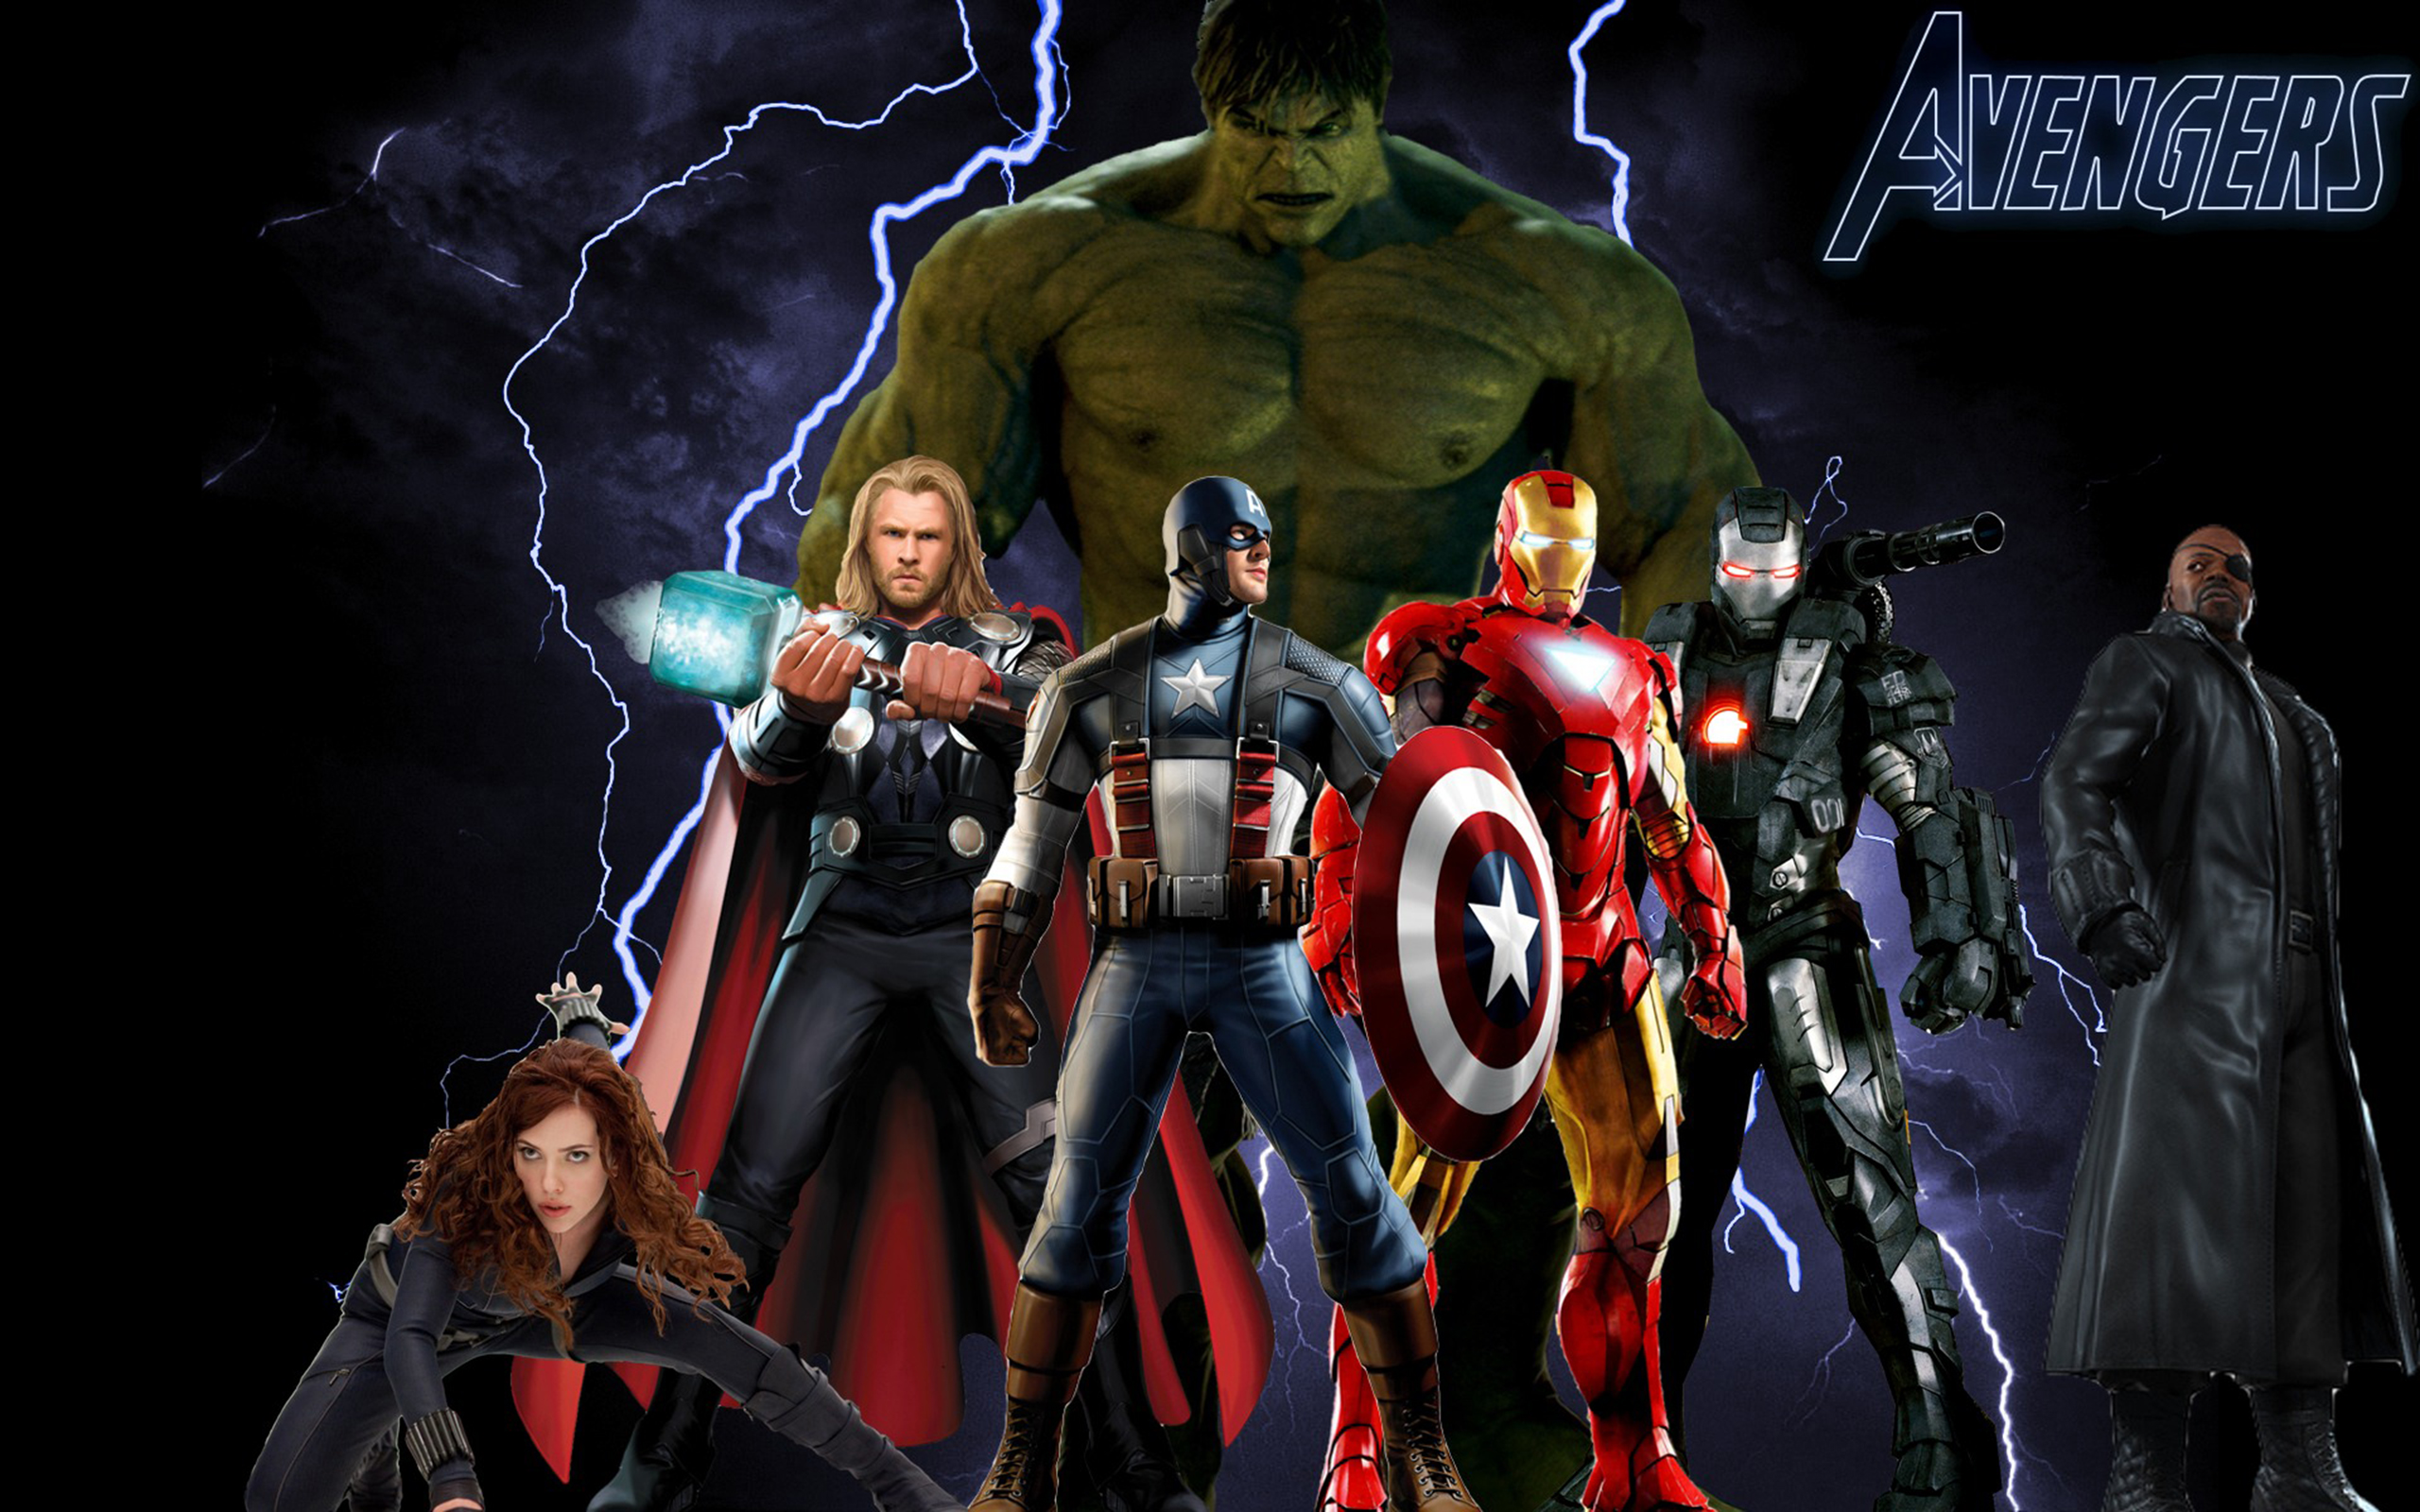 the avengers | free desktop wallpapers for widescreen, hd and mobile